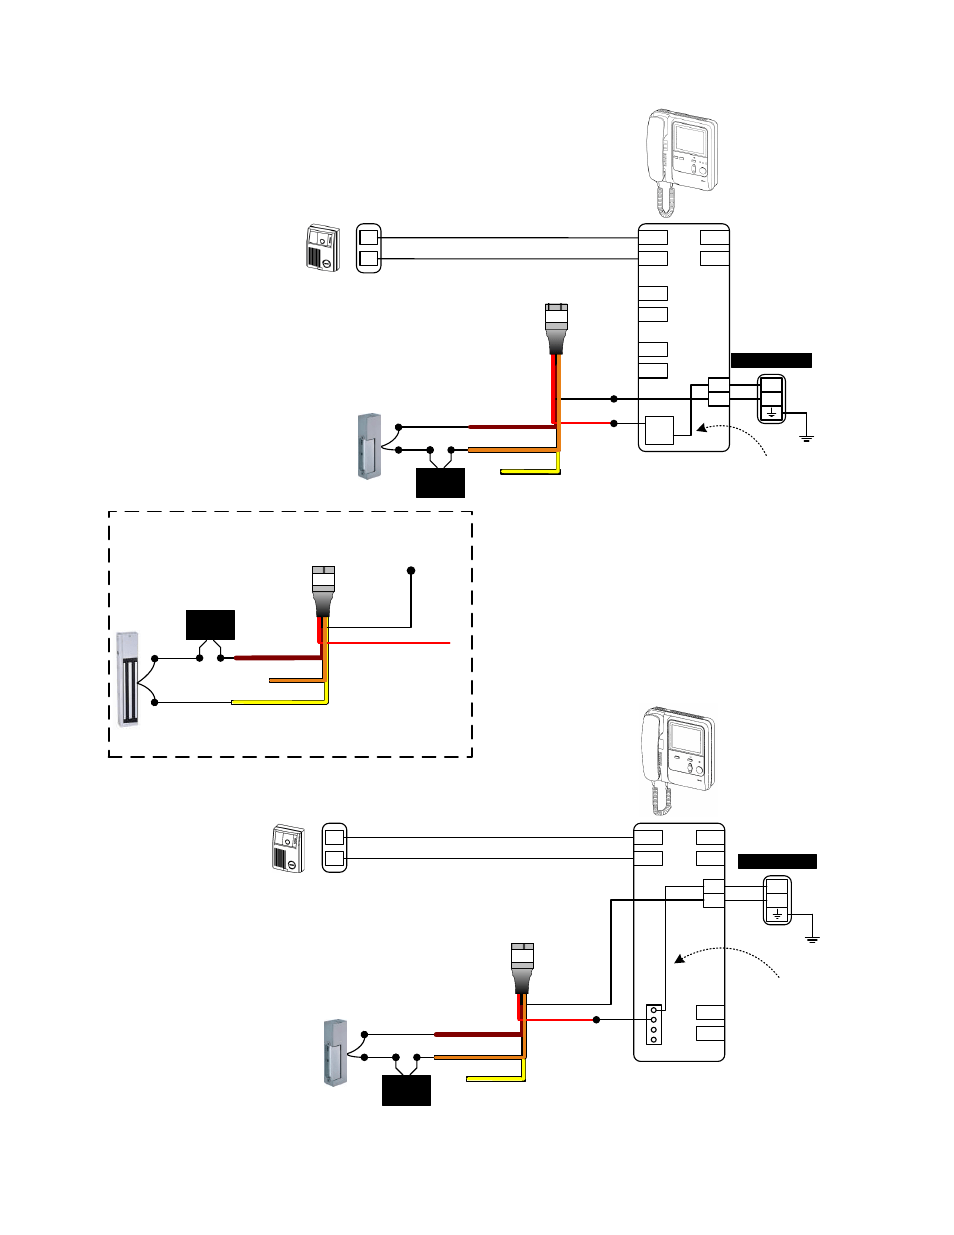 aiphone door release relay module ry 24l page2?resize\=665%2C861 wiring diagram hid edge solo 5 pin relay wiring diagram, led von duprin wiring diagram at alyssarenee.co